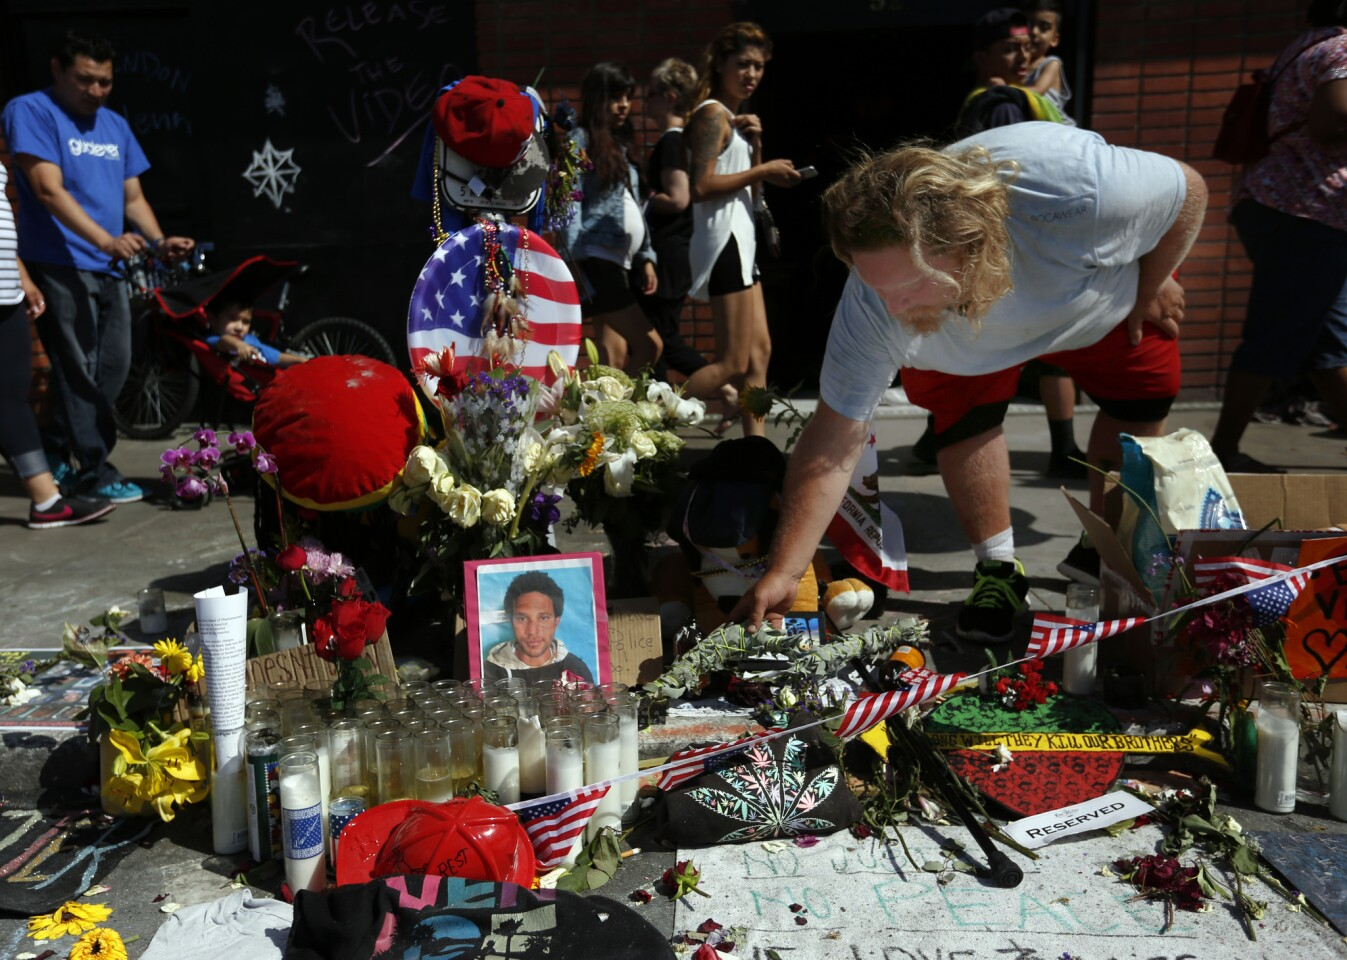 Bruce Chartier, 30, places sage on a memorial for his friend Brendon Glenn in Venice.